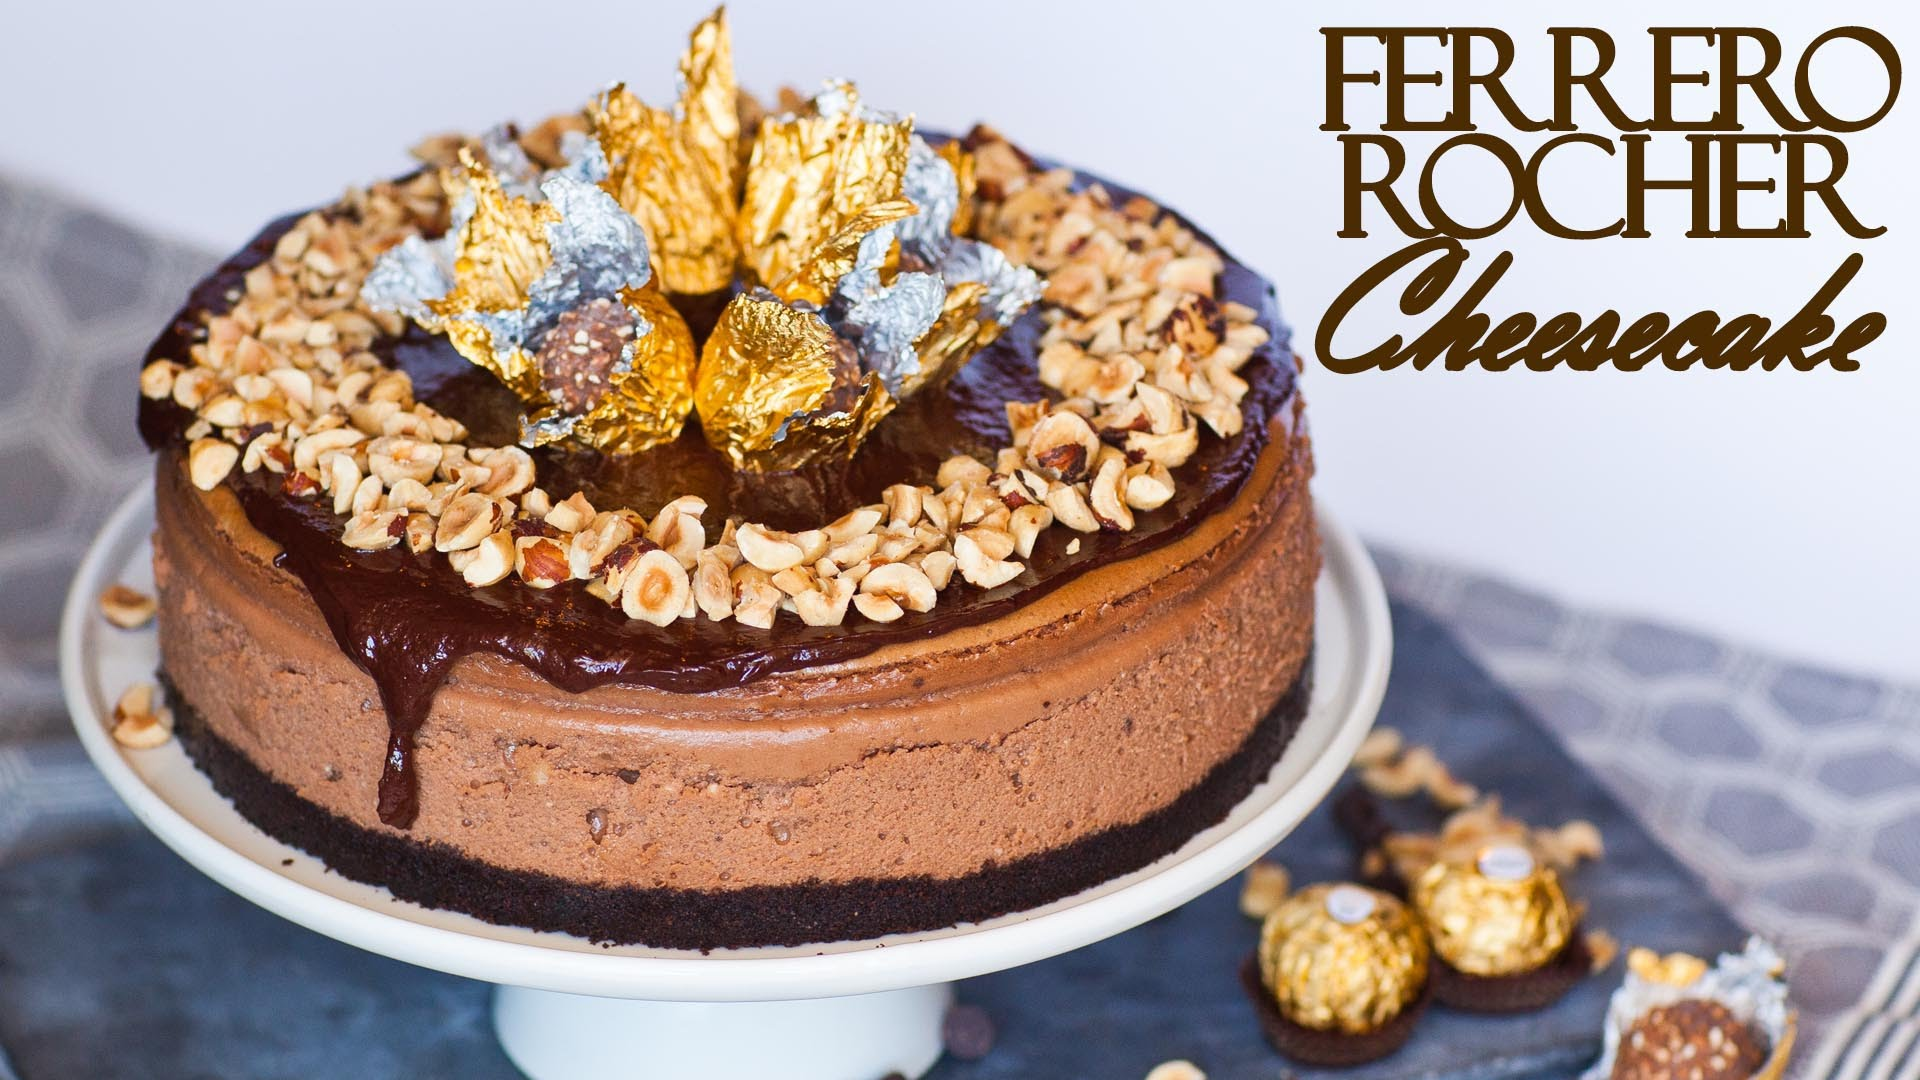 She Makes A Beautiful And Delicious Ferrero Rocher Cheesecake